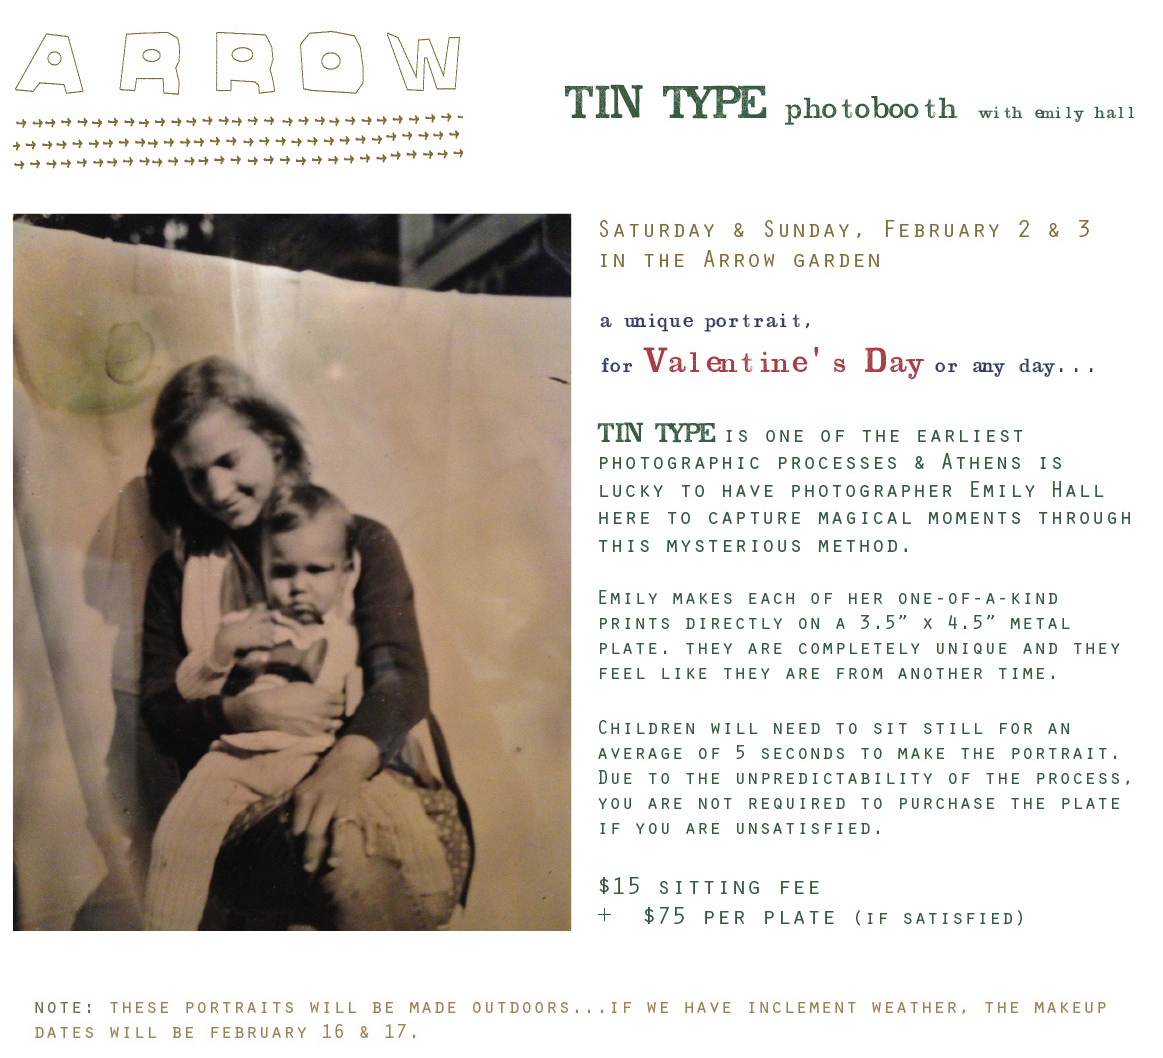 Tin Type Photo Booth with Emily Hall: a fundraiser for Arrow